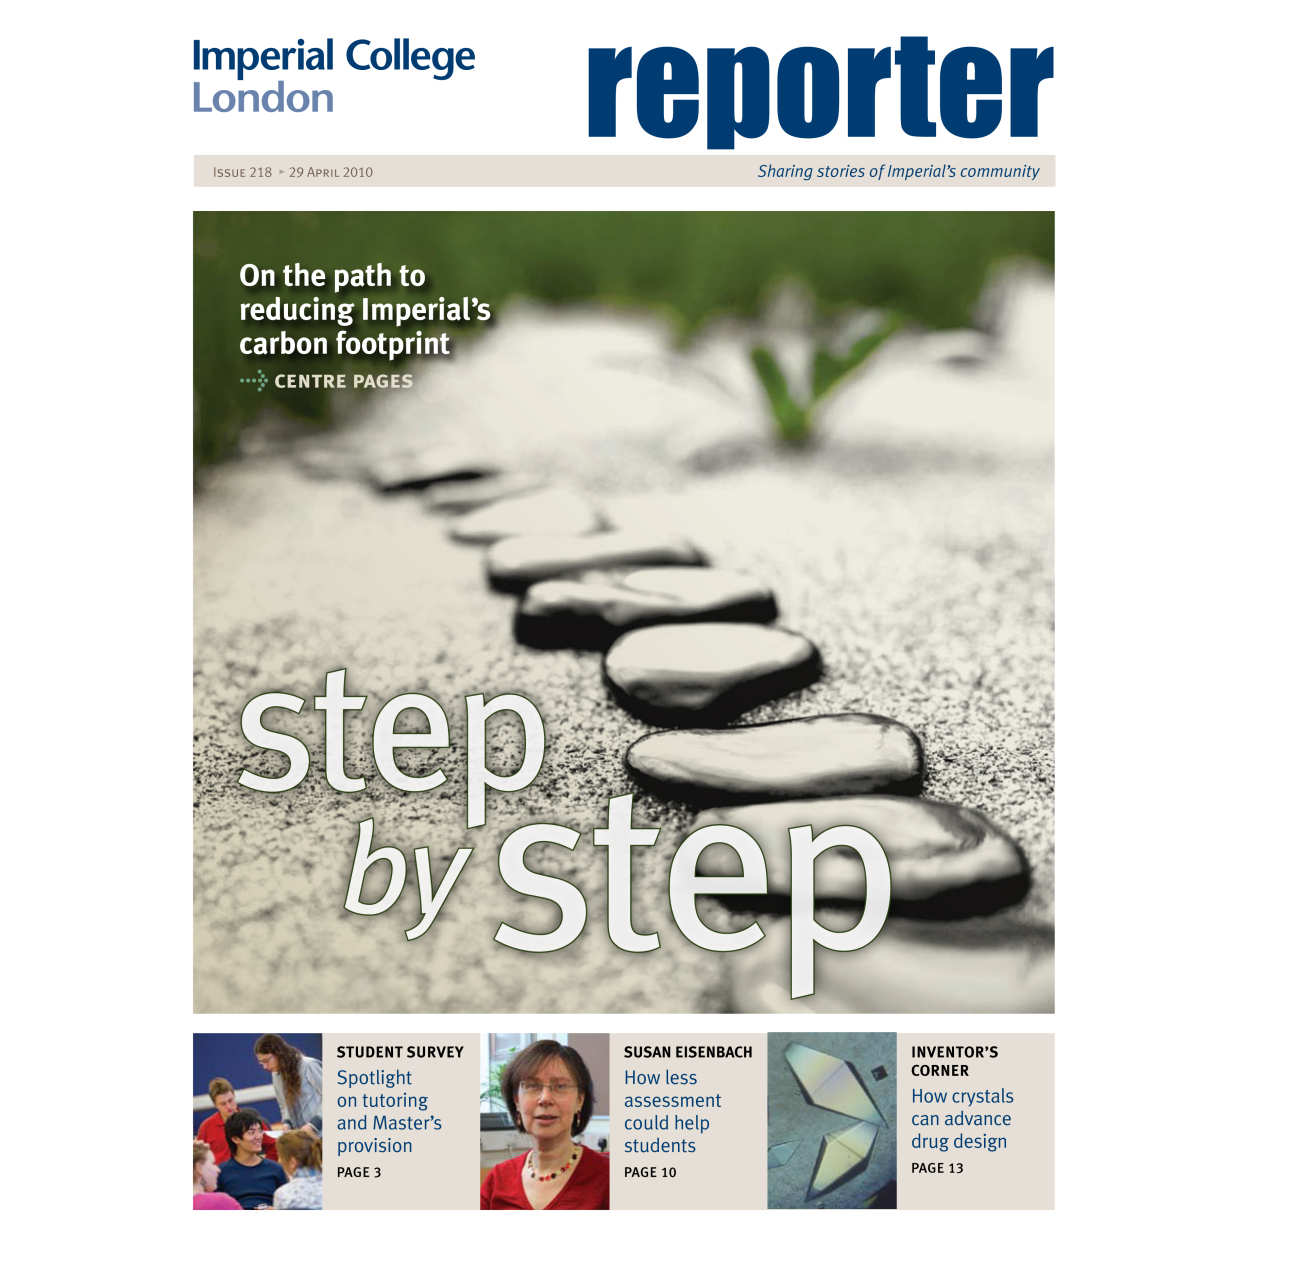 Issue 218 - 29 April 2010